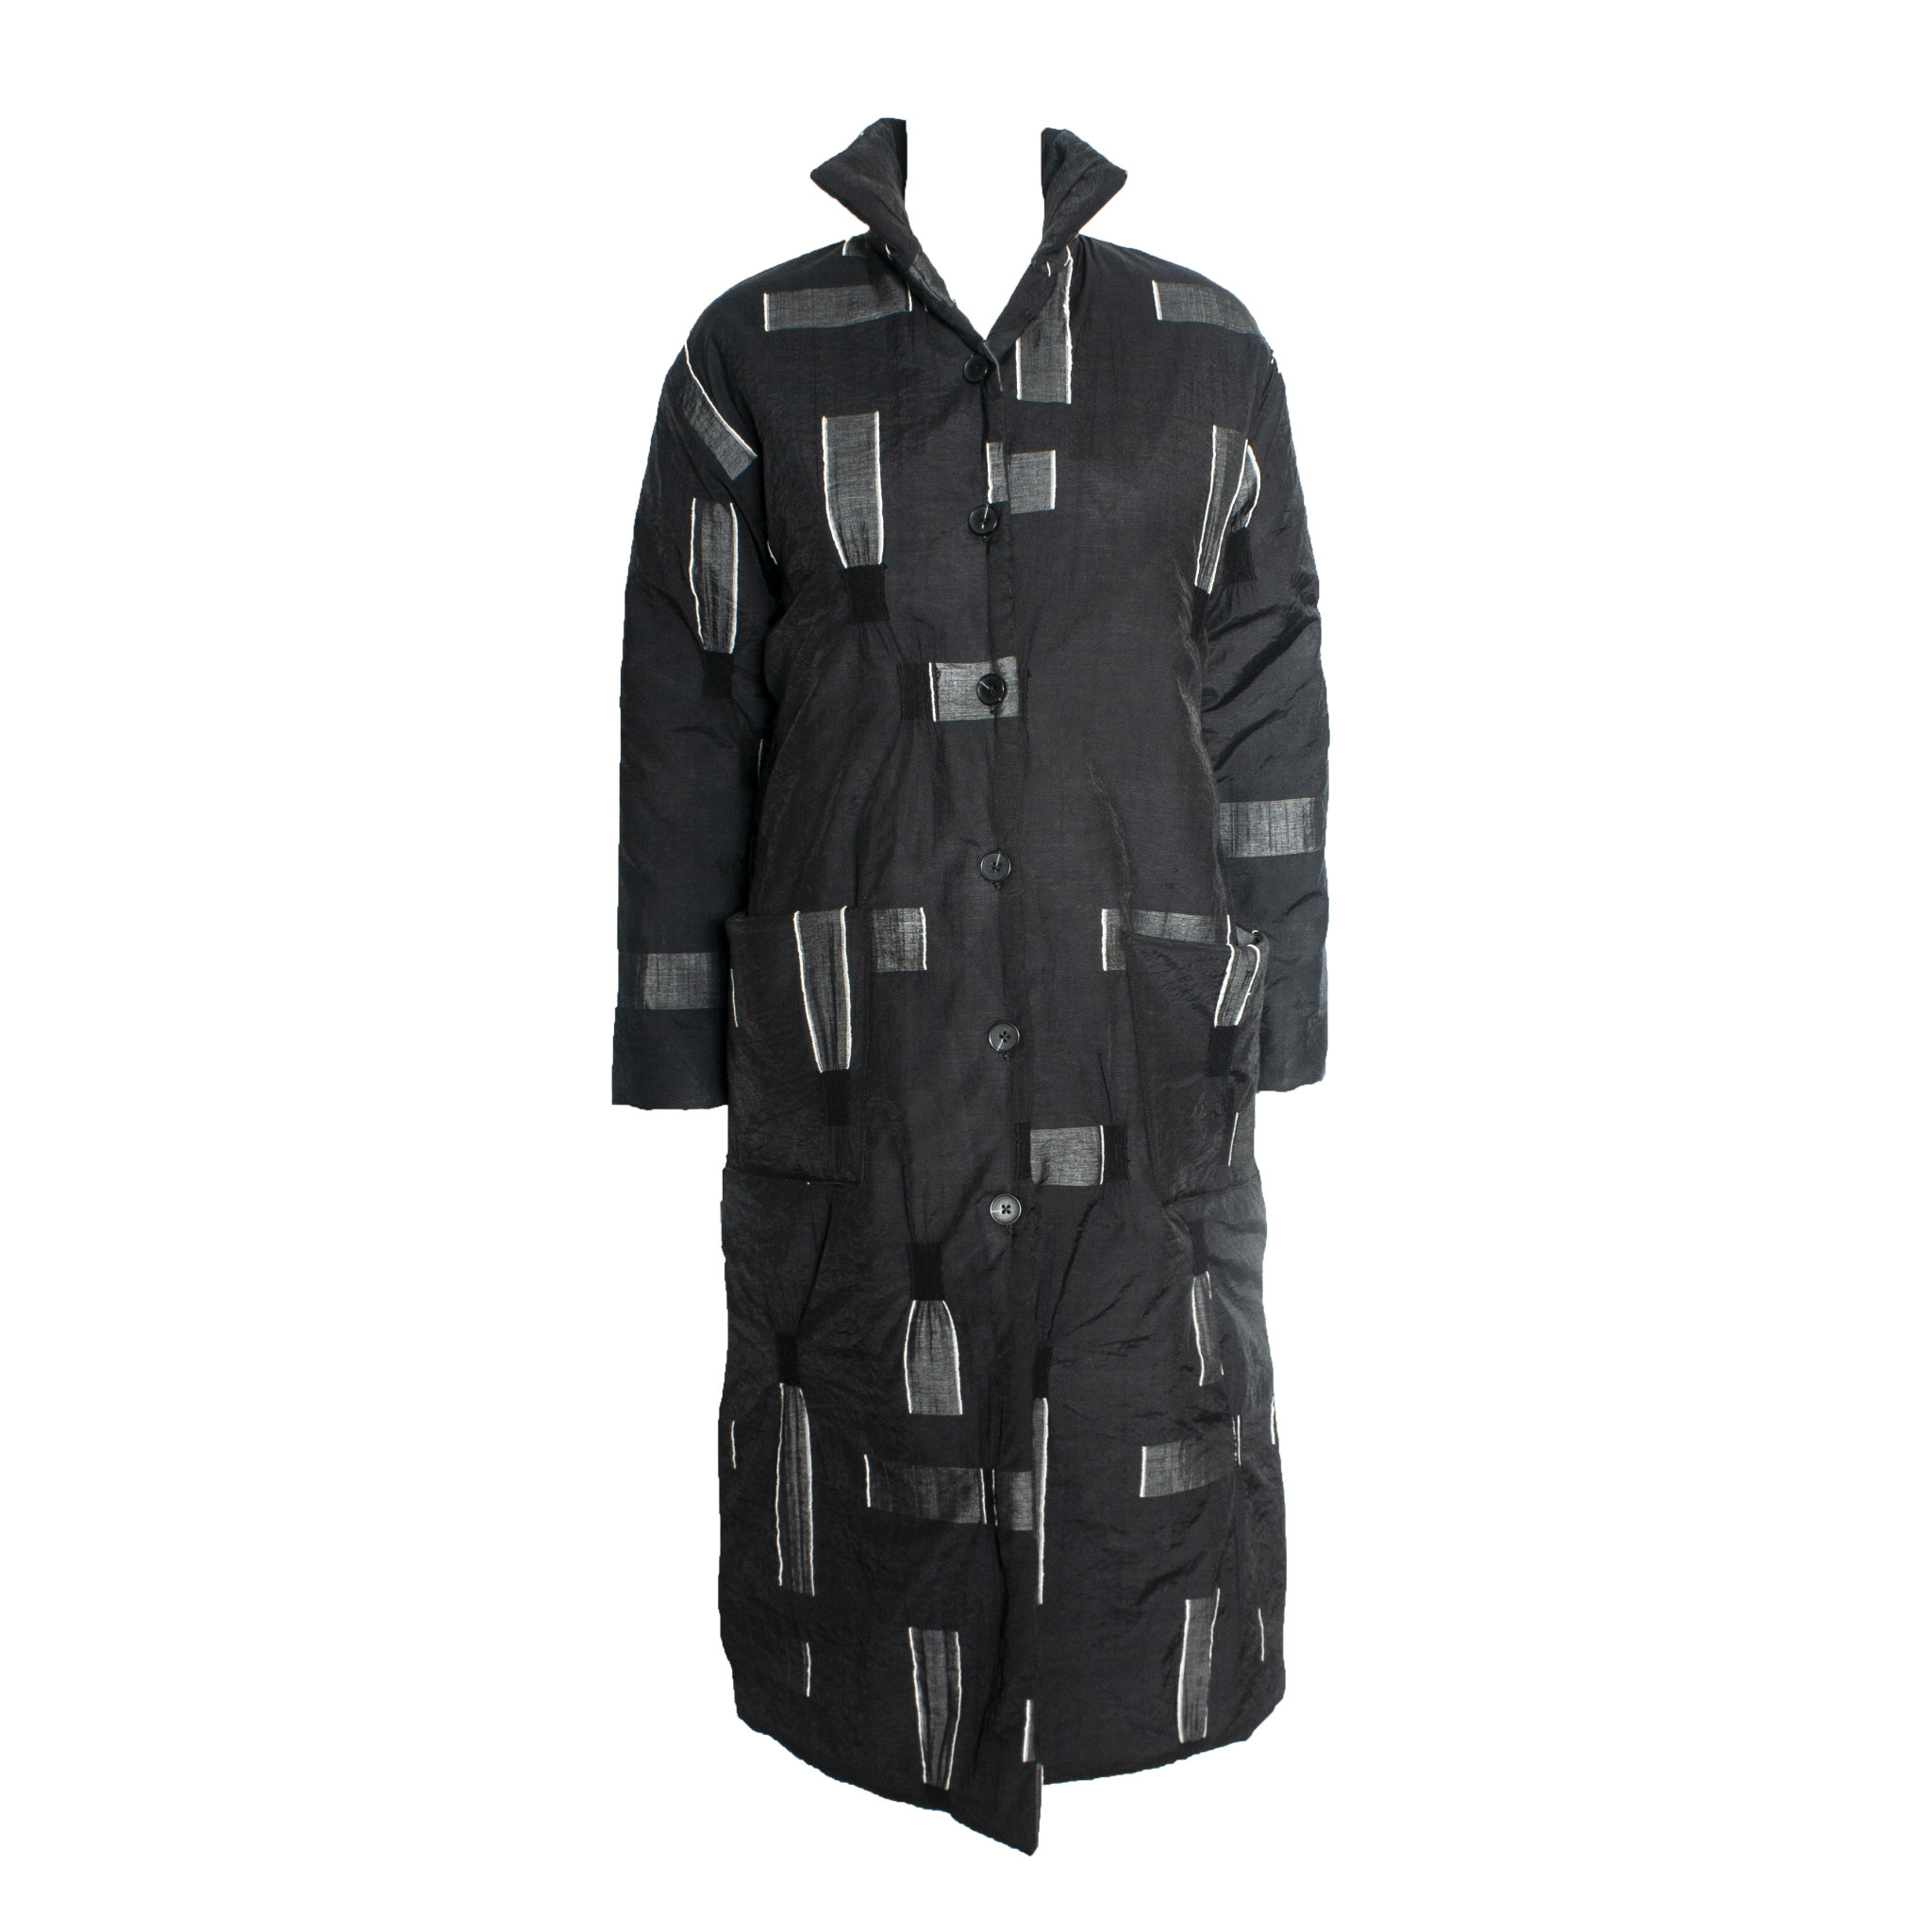 Xiaoyan Xiaoyan Long Coat - Black